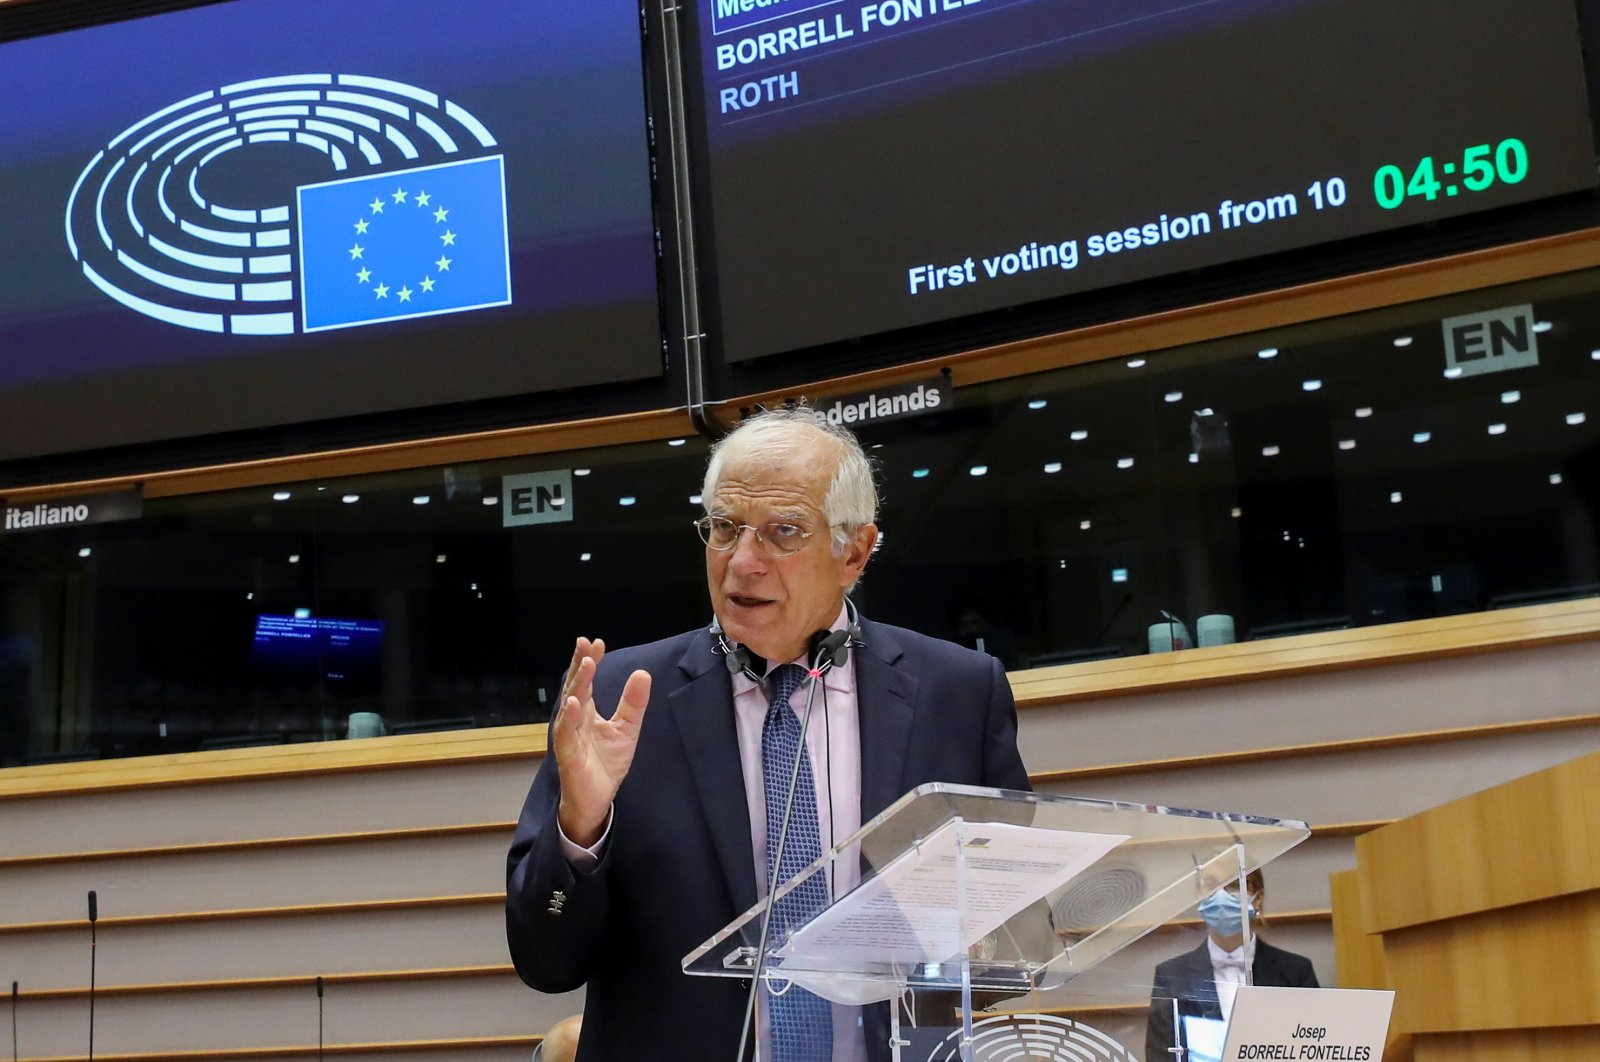 Josep Borrell, high representative of the European Union for Foreign Affairs and Security Policy, speaks at the European Parliament, in Brussels, Belgium on Sept. 15, 2020. (Reuters Photo)